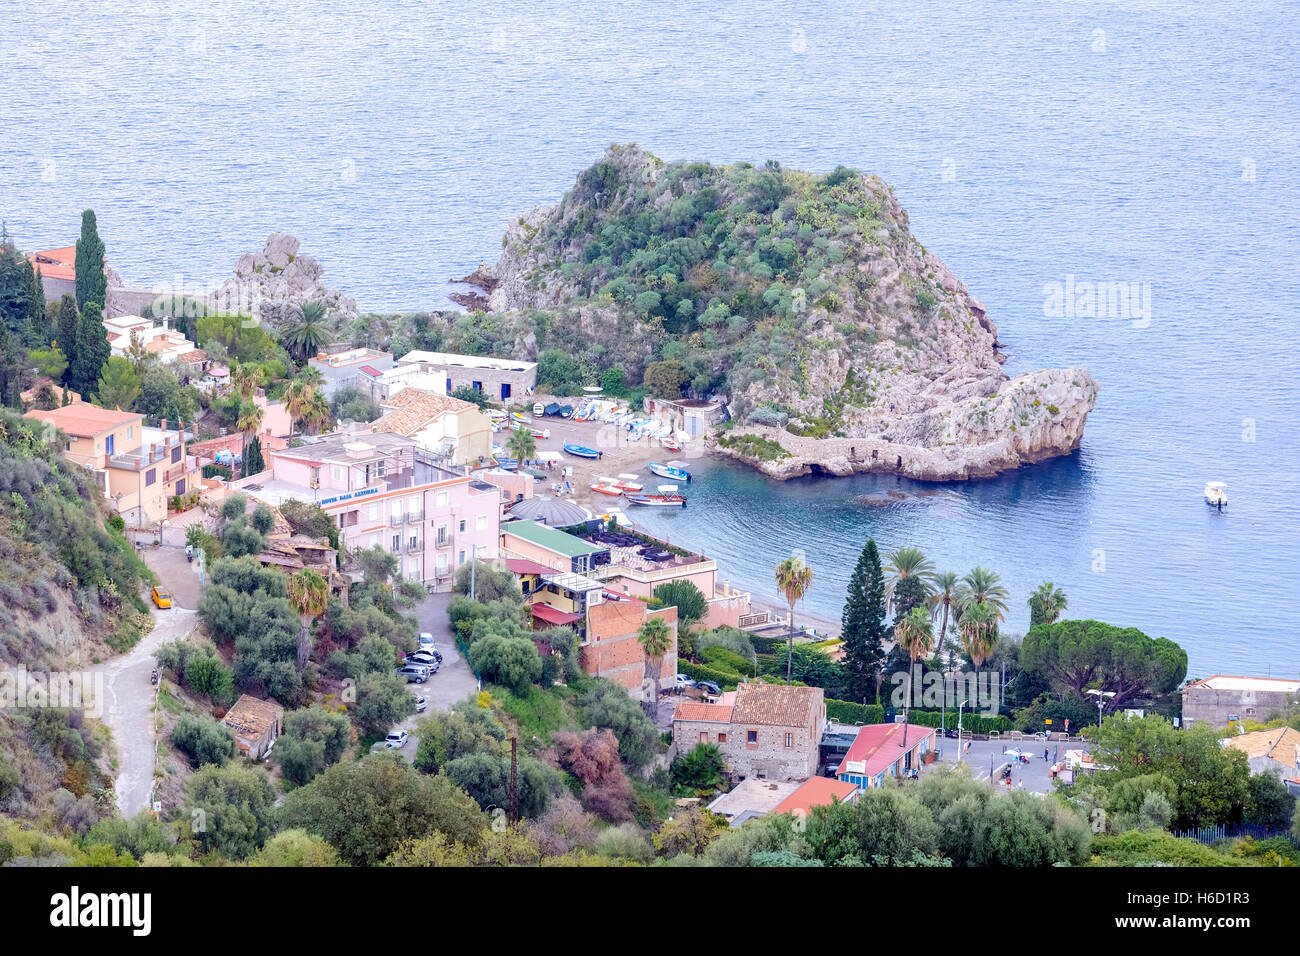 Taormina, Messina, Sicily, Italy Stock Photo